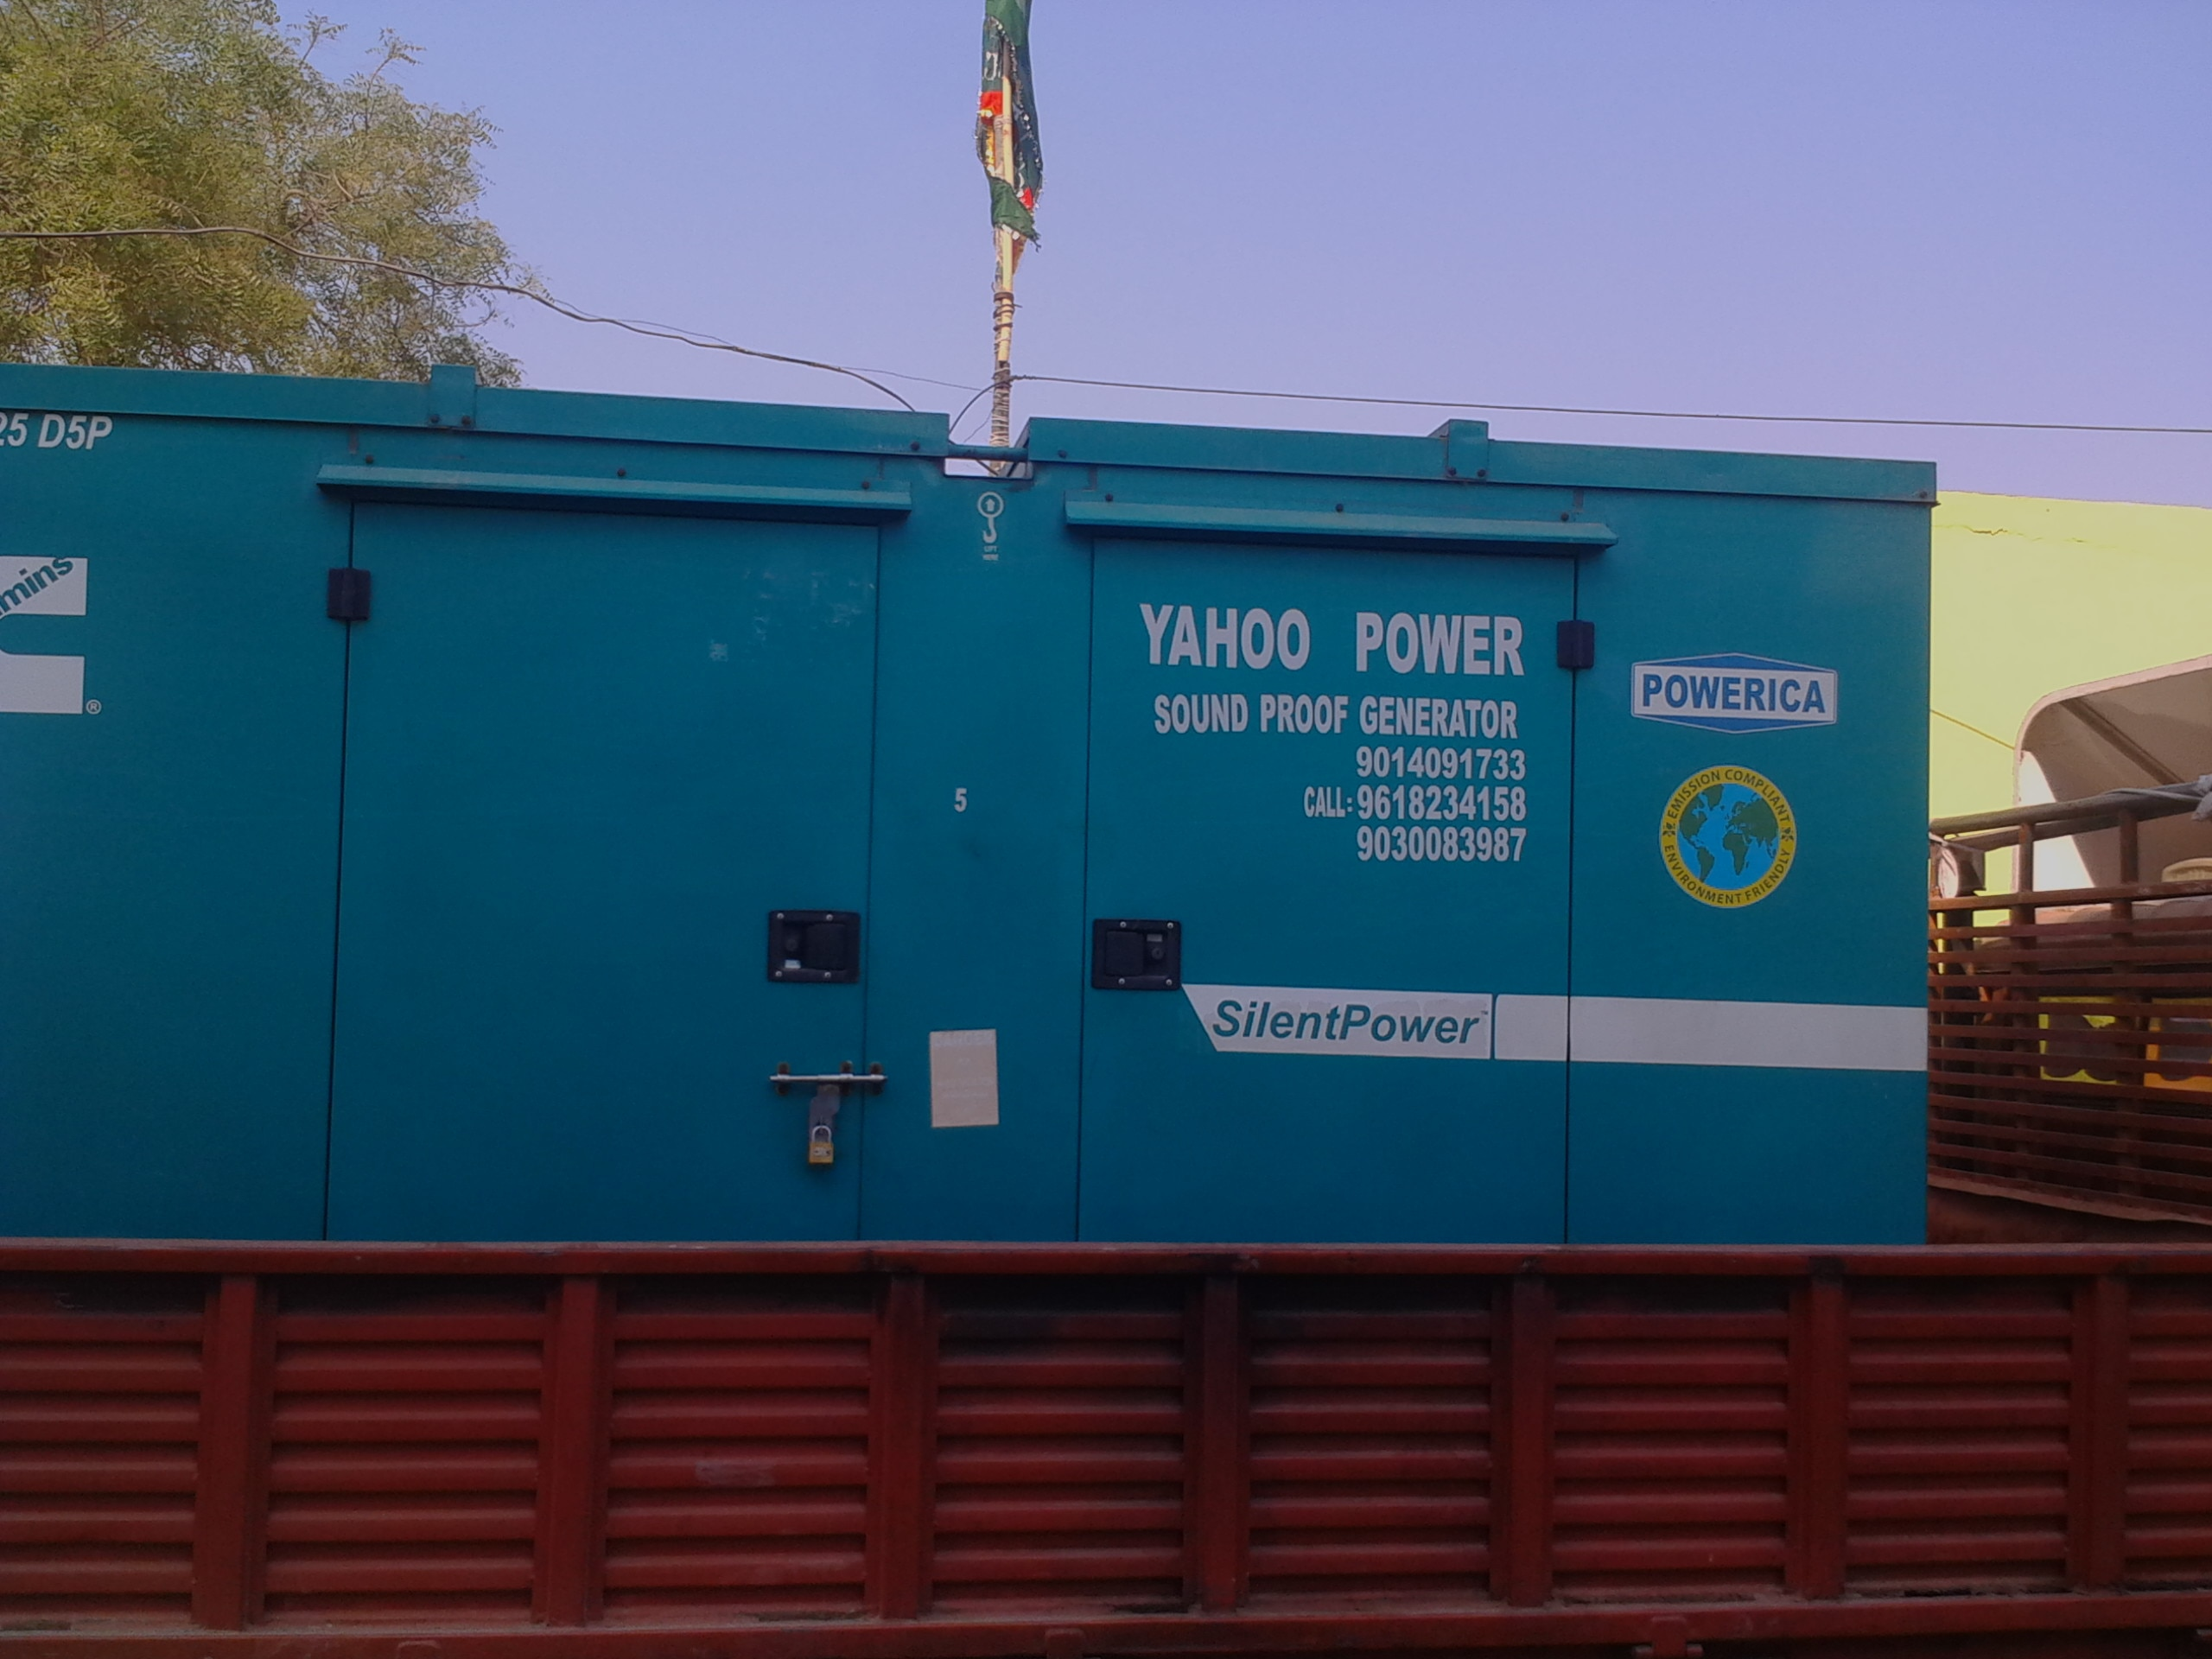 Yahoo Power in Hyderabad Yahoo Power Sound Proof & Open